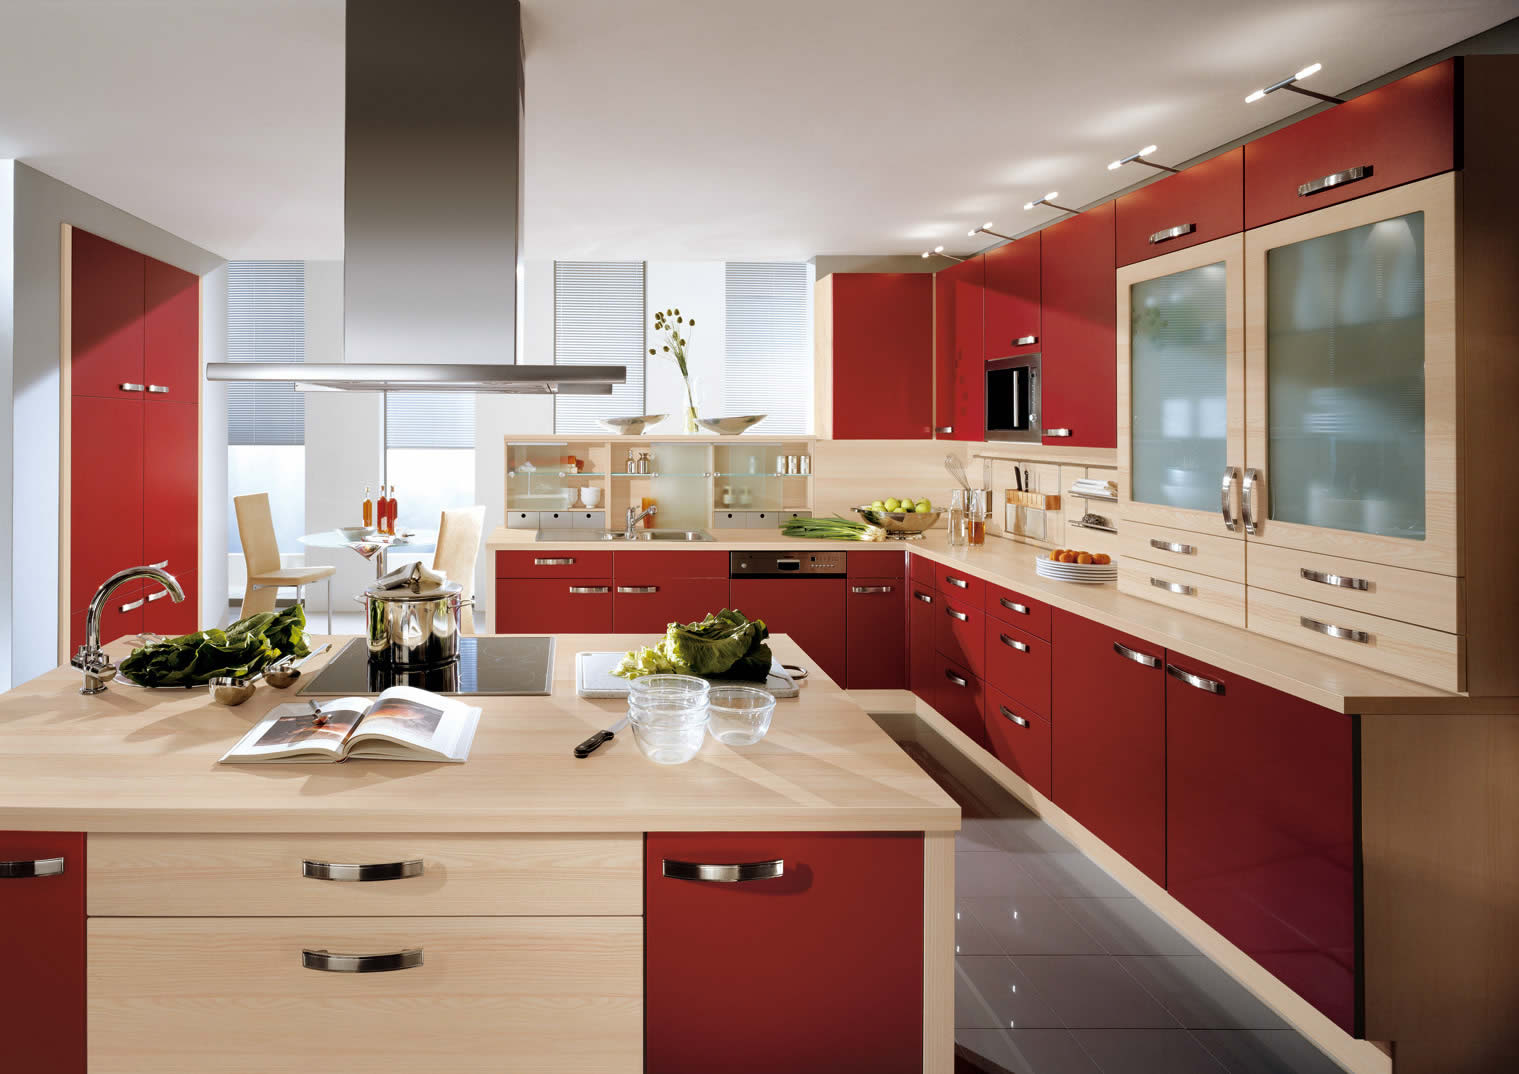 Popular Styles For The Design Of The Kitchen Living Room Interior